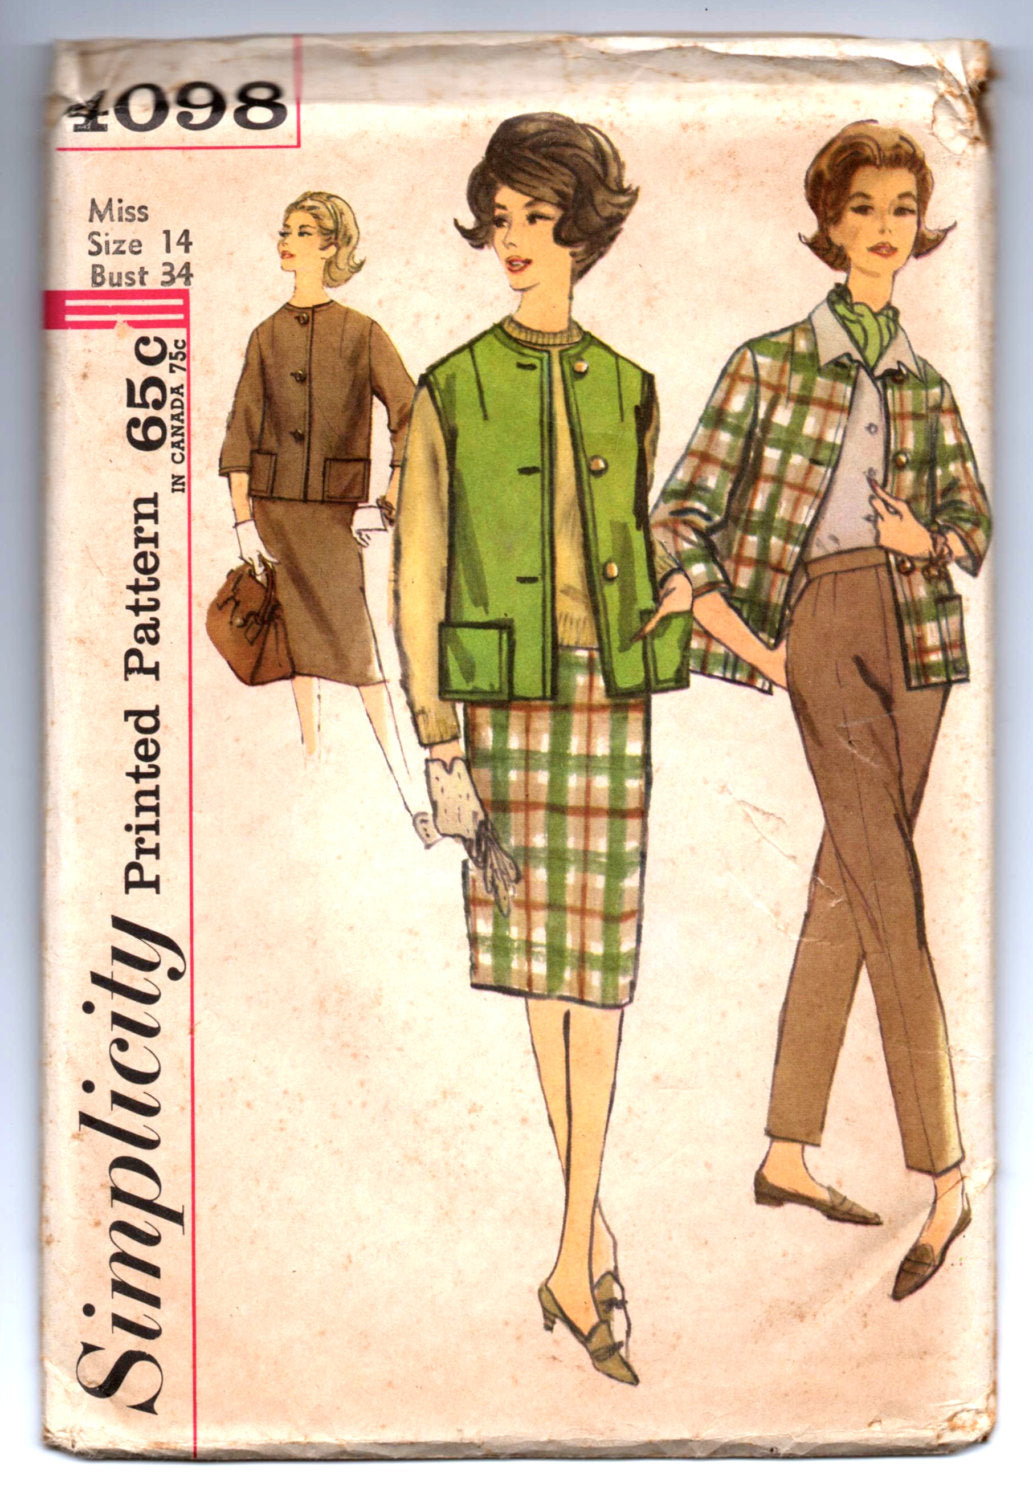 1960's Simplicity Jacket, Skirt, and Pants Pattern - Bust 34